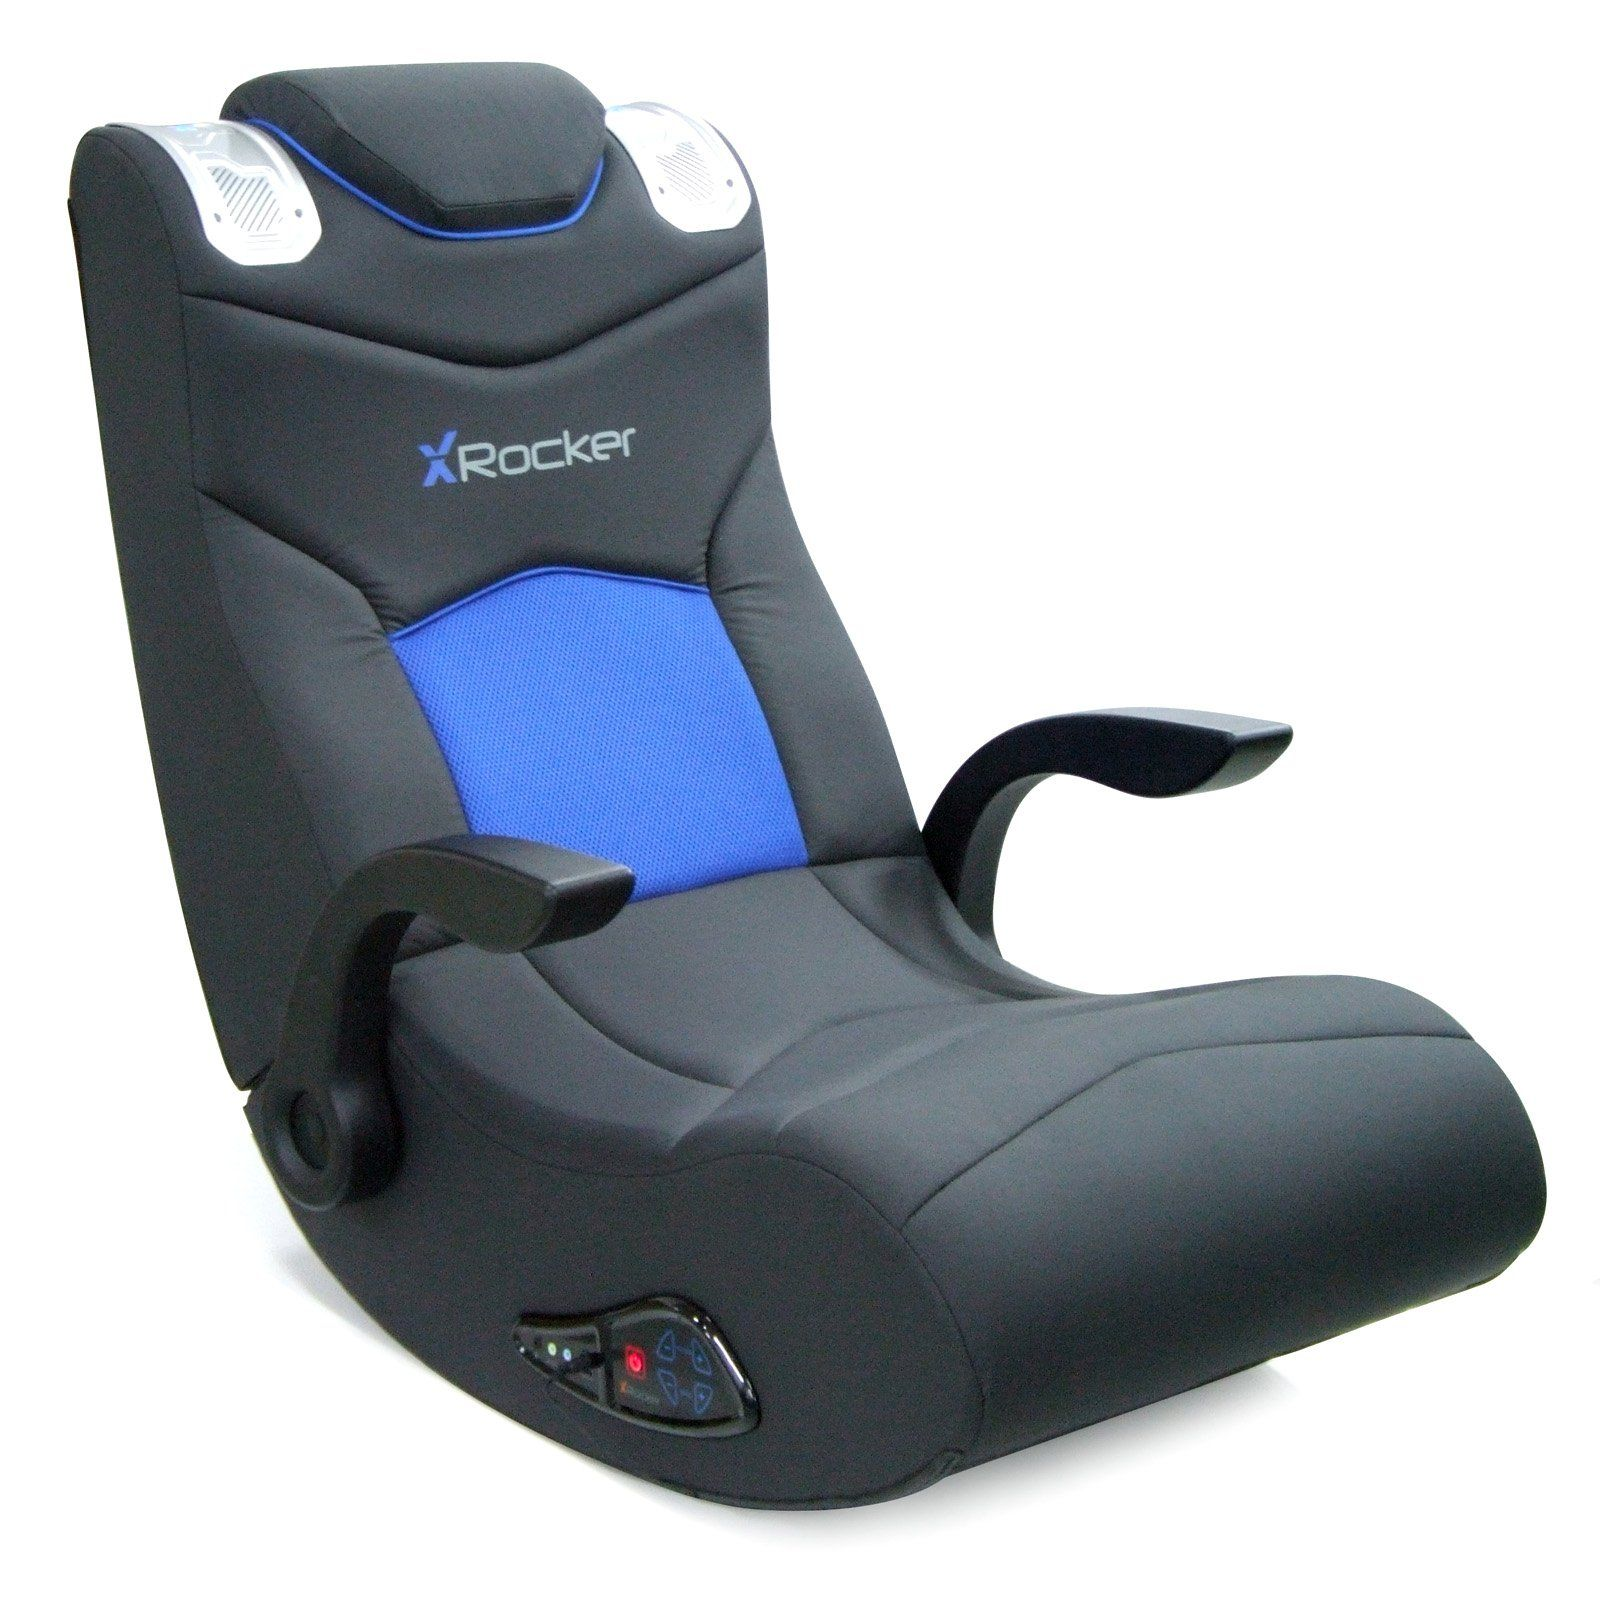 X Rocker Gaming Chair Al S Chairs And Tables Have To It Ice Video Game 199 99 Hayneedle